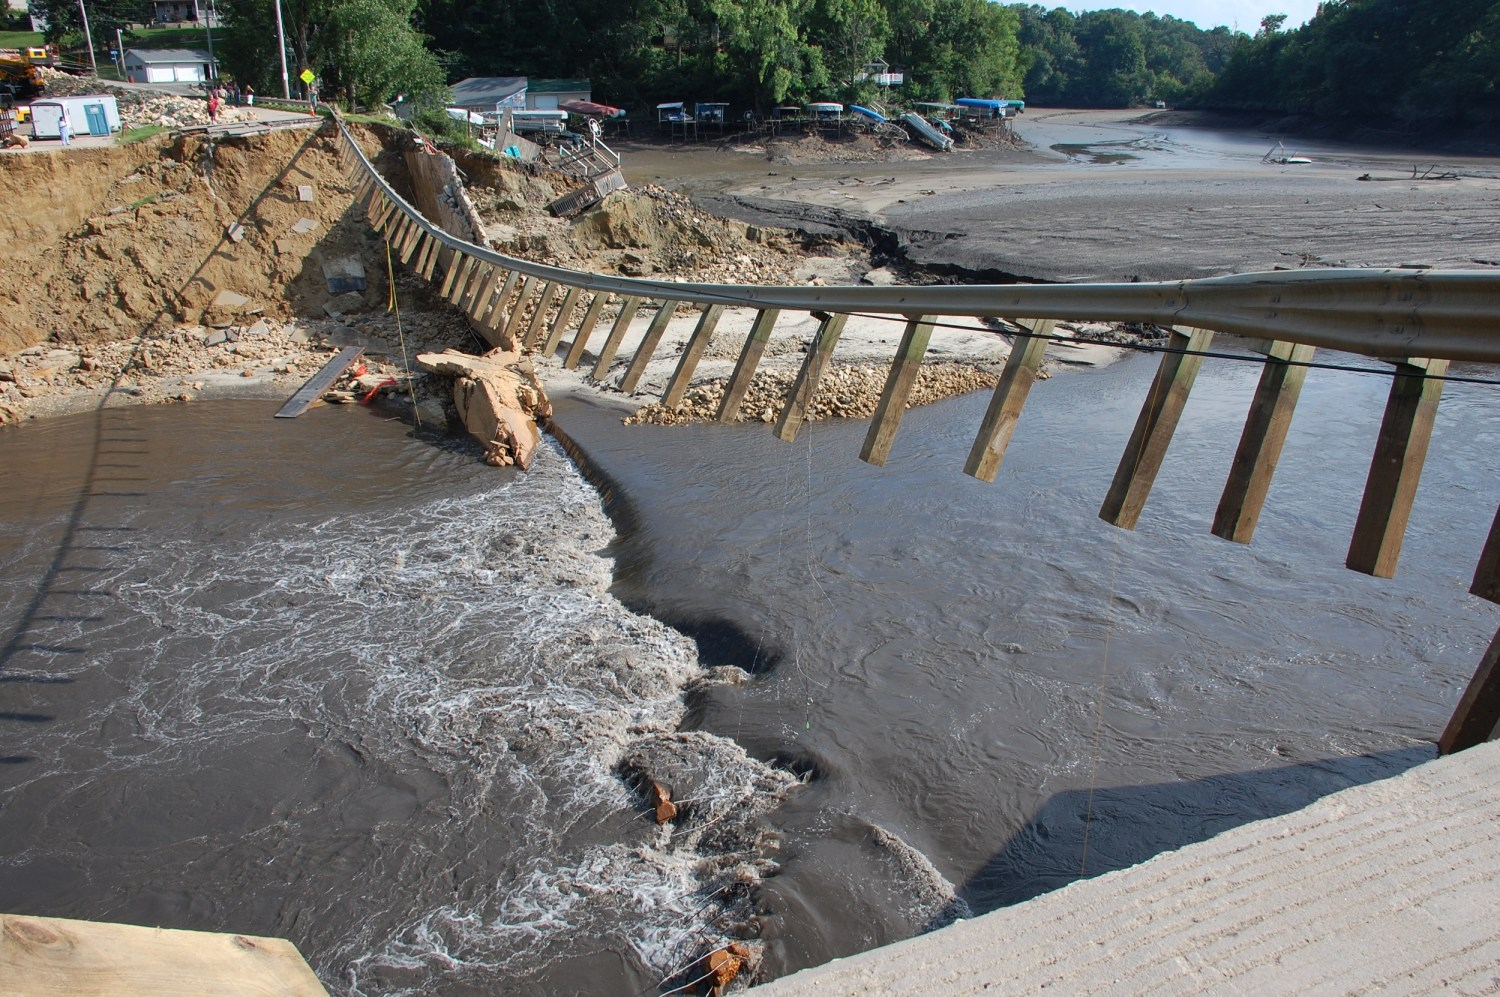 The remains of the Lake Delhi Dam, in Iowa, after the 59-foot-high structure failed during a heavy rainstorm in July 2010. Photo by Josh deBerge / FEMA